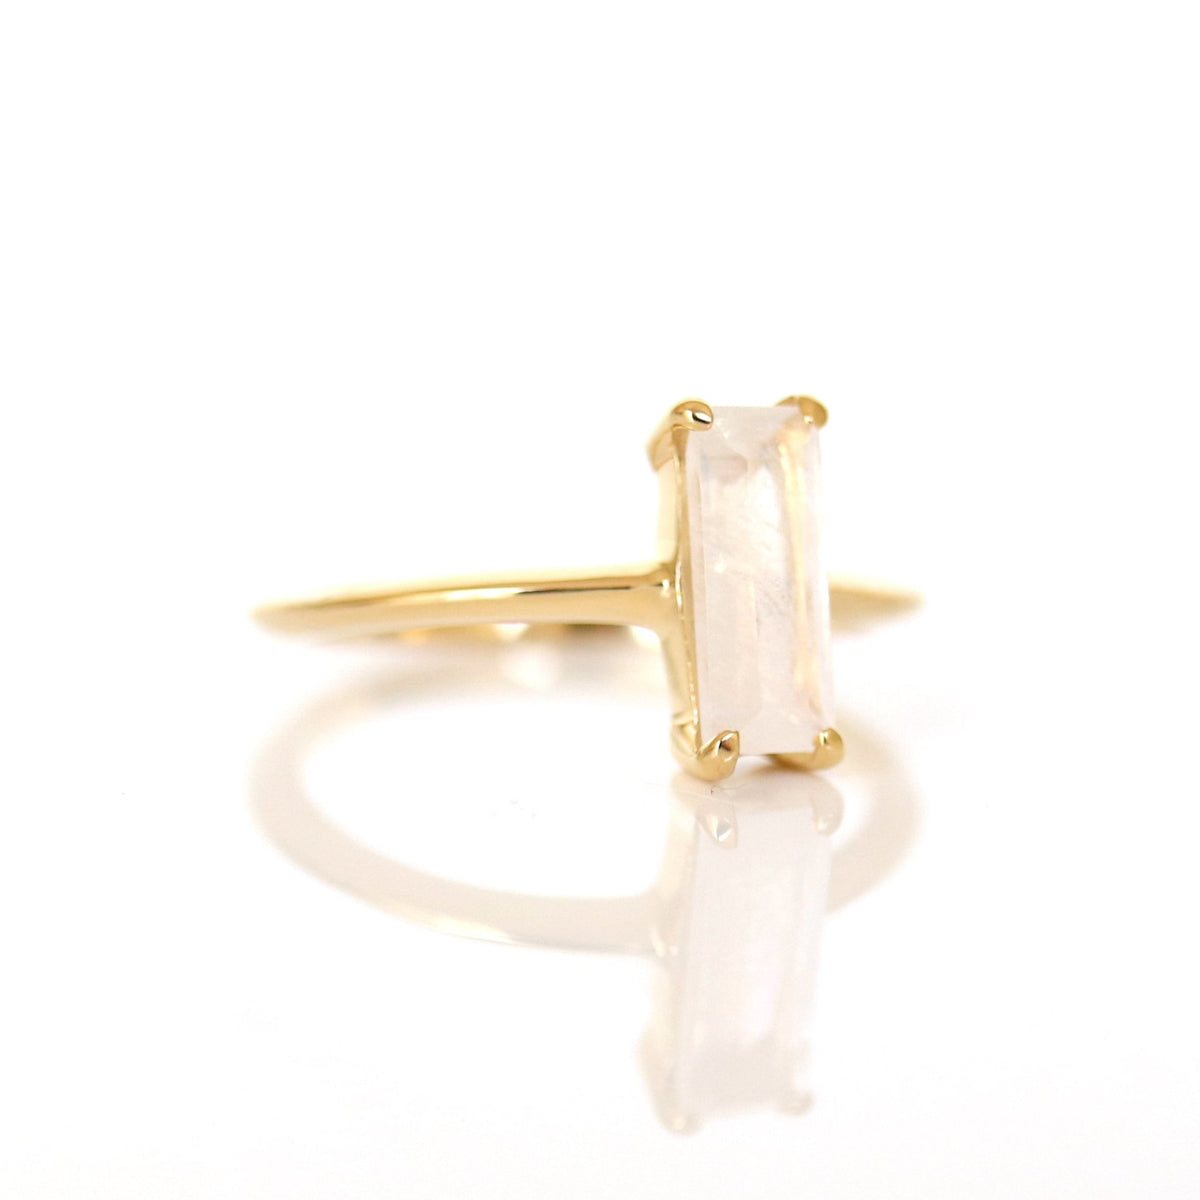 LOYAL RING RAINBOW MOONSTONE & GOLD - SO PRETTY CARA COTTER